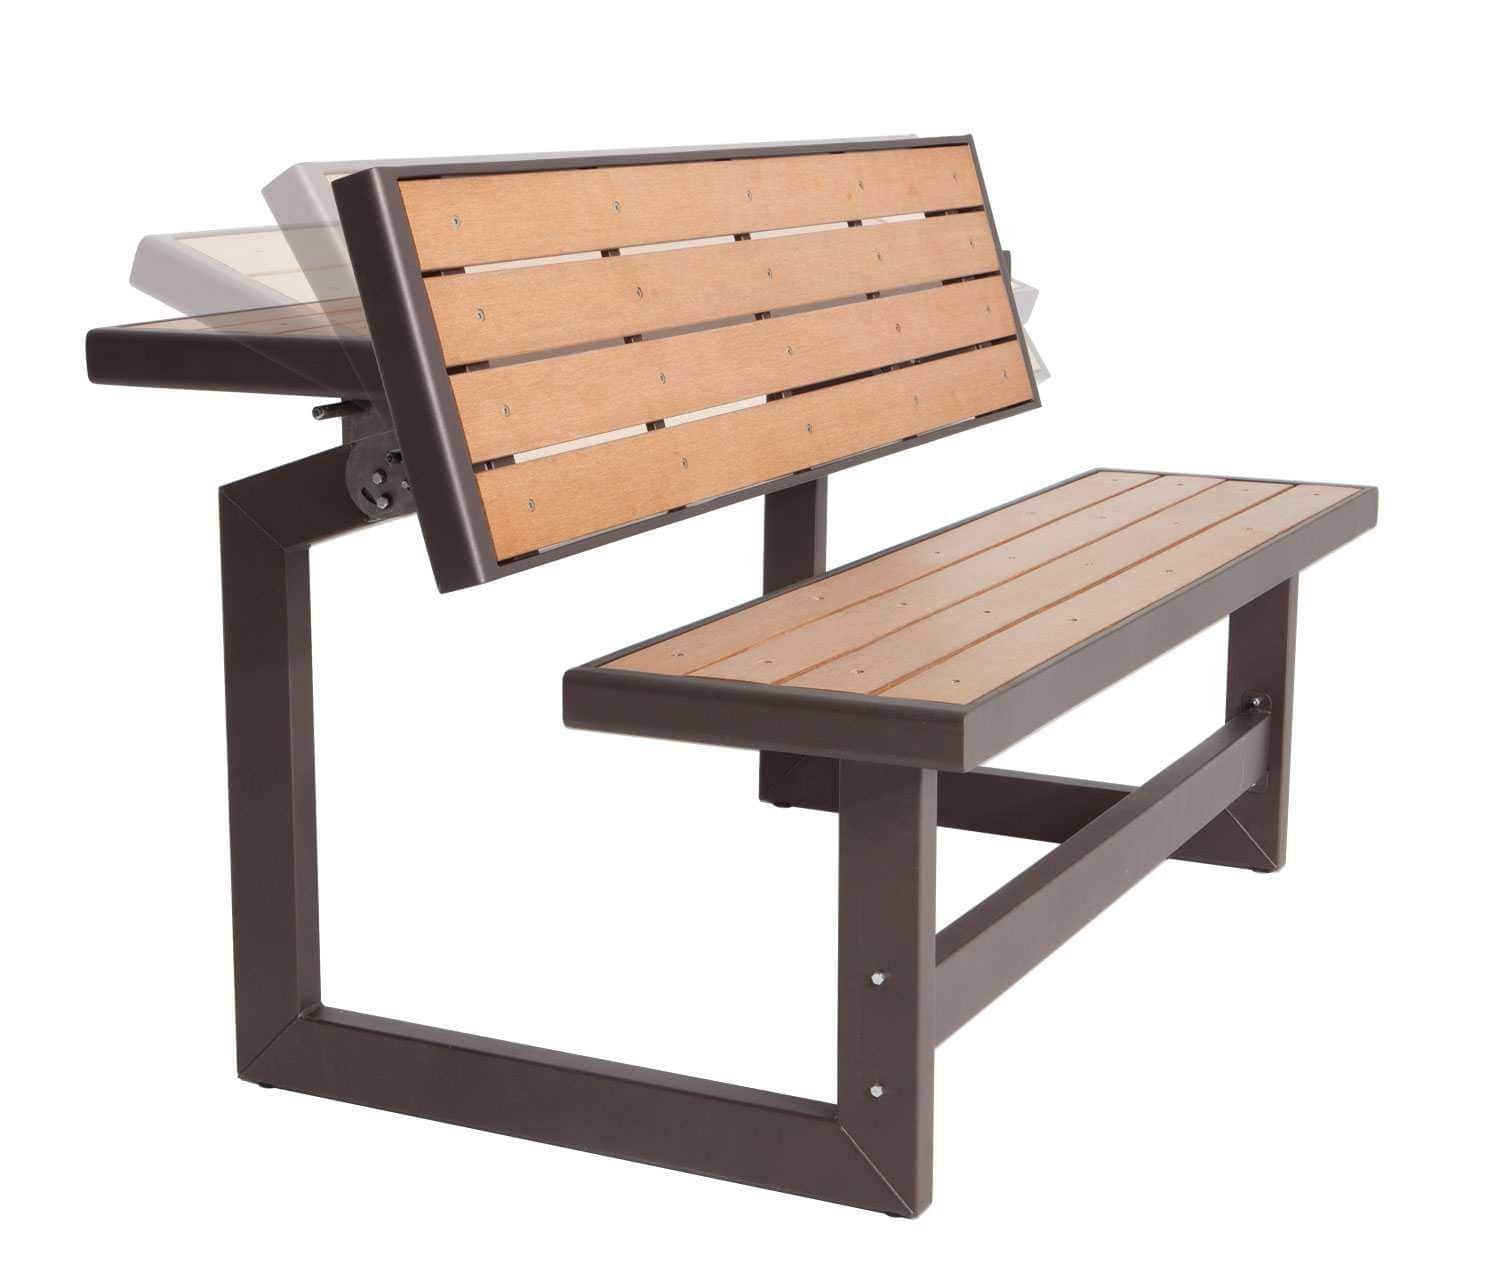 Lifetime 60054 Convertible Bench / Table $131.99, FS (Amazon Prime)